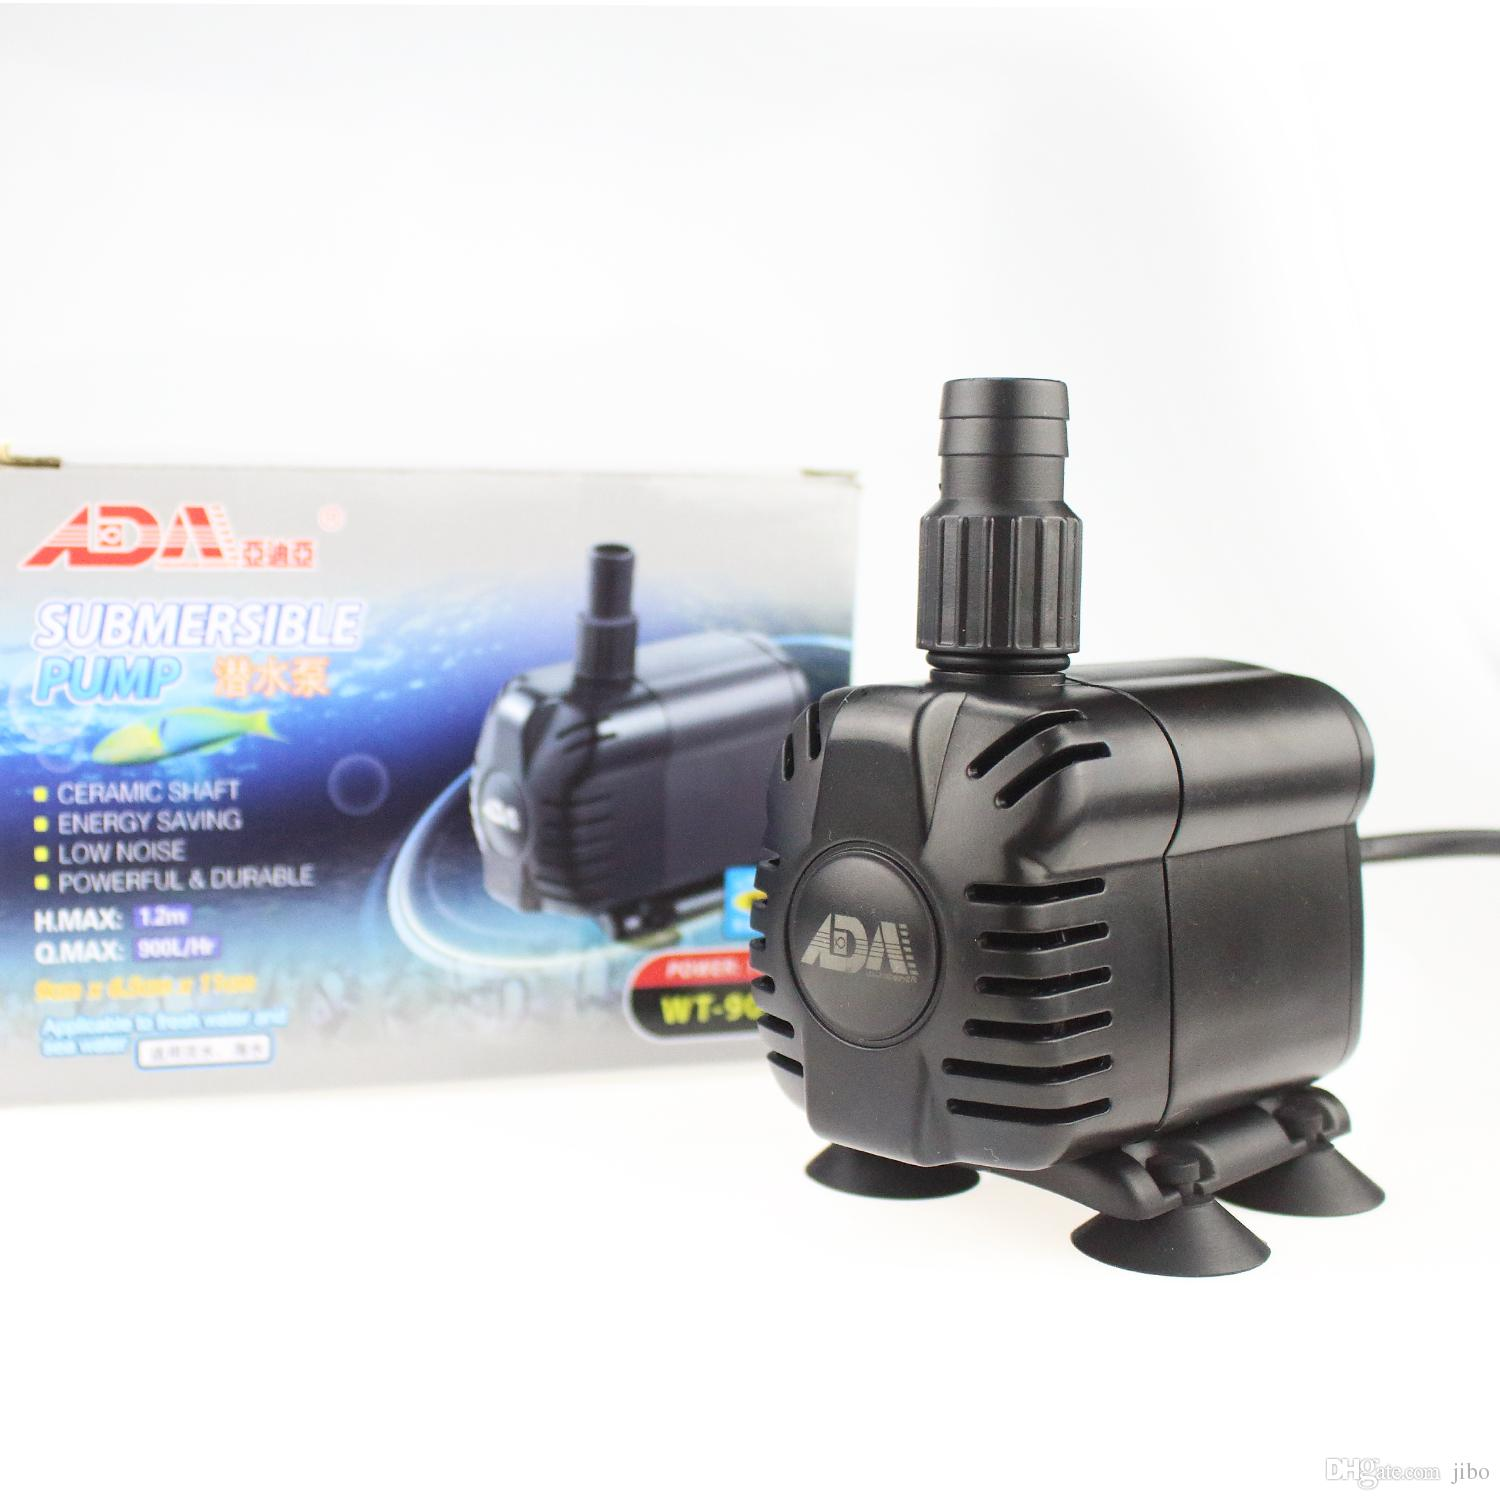 Aquarium fish tank pump - Ada Water Pump Mini Submersible For Aquarium Fish Tank Power Head Water Feature Tropical Marine